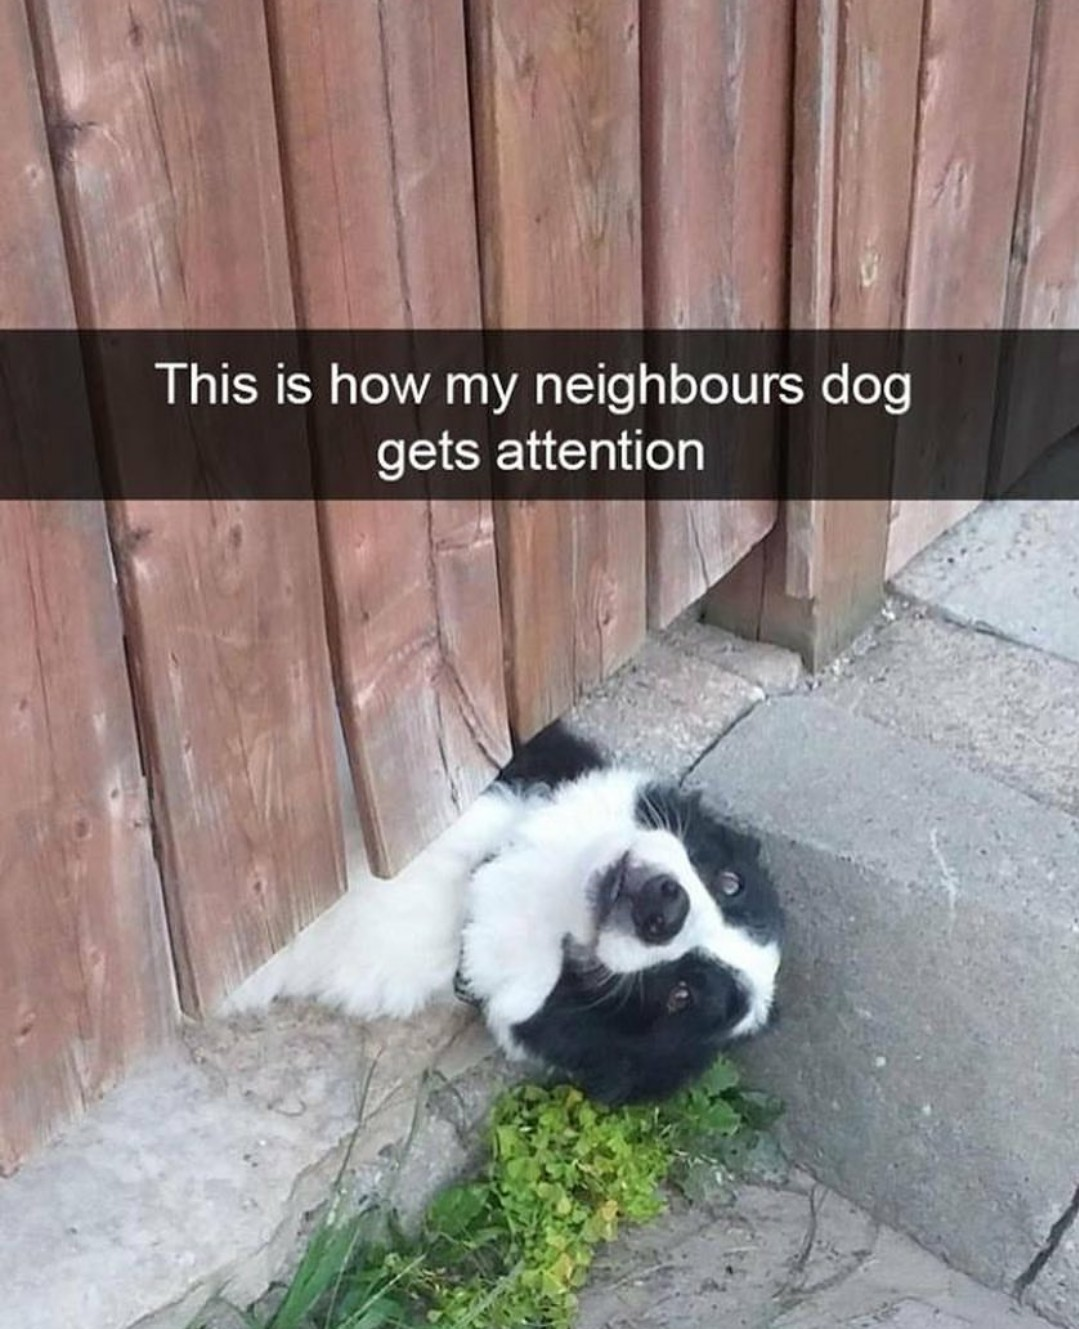 This is how my neighbour's dog gets attention